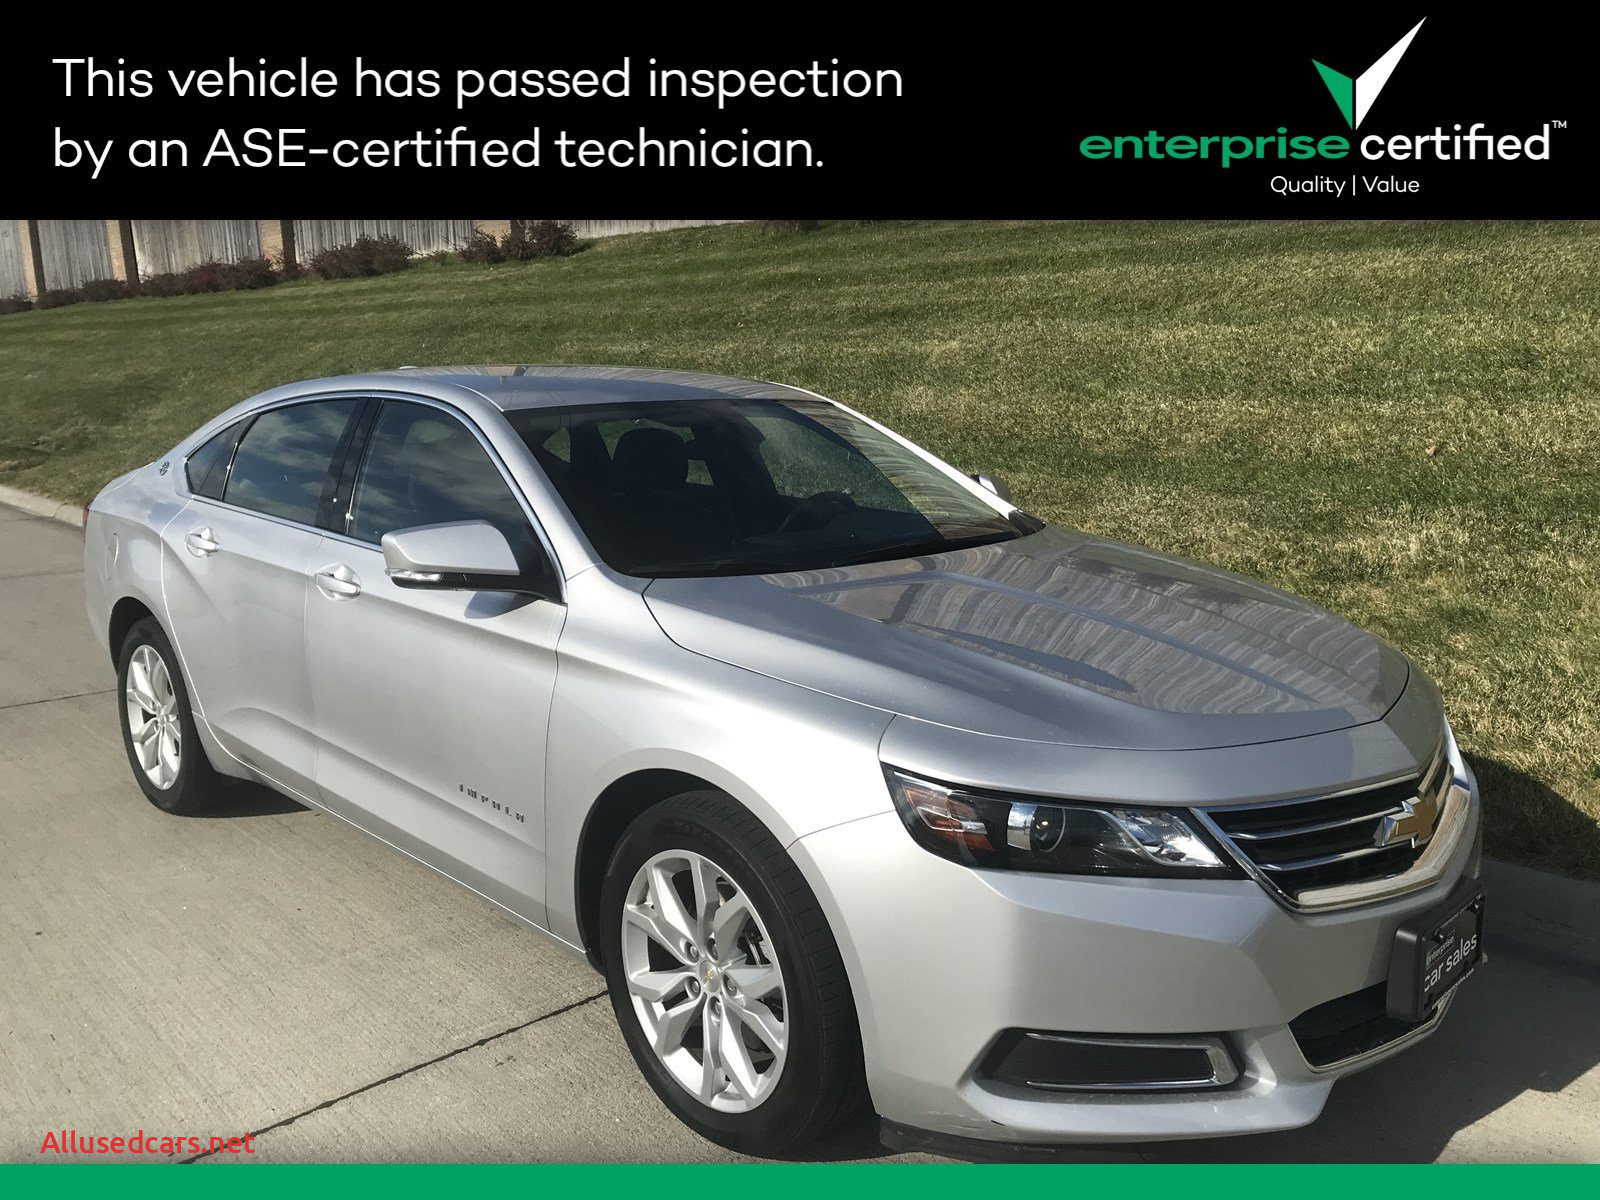 Certified Used Cars for Sale Near Me Awesome Cars for Sale Near Me Under 3000 Luxury Enterprise Car